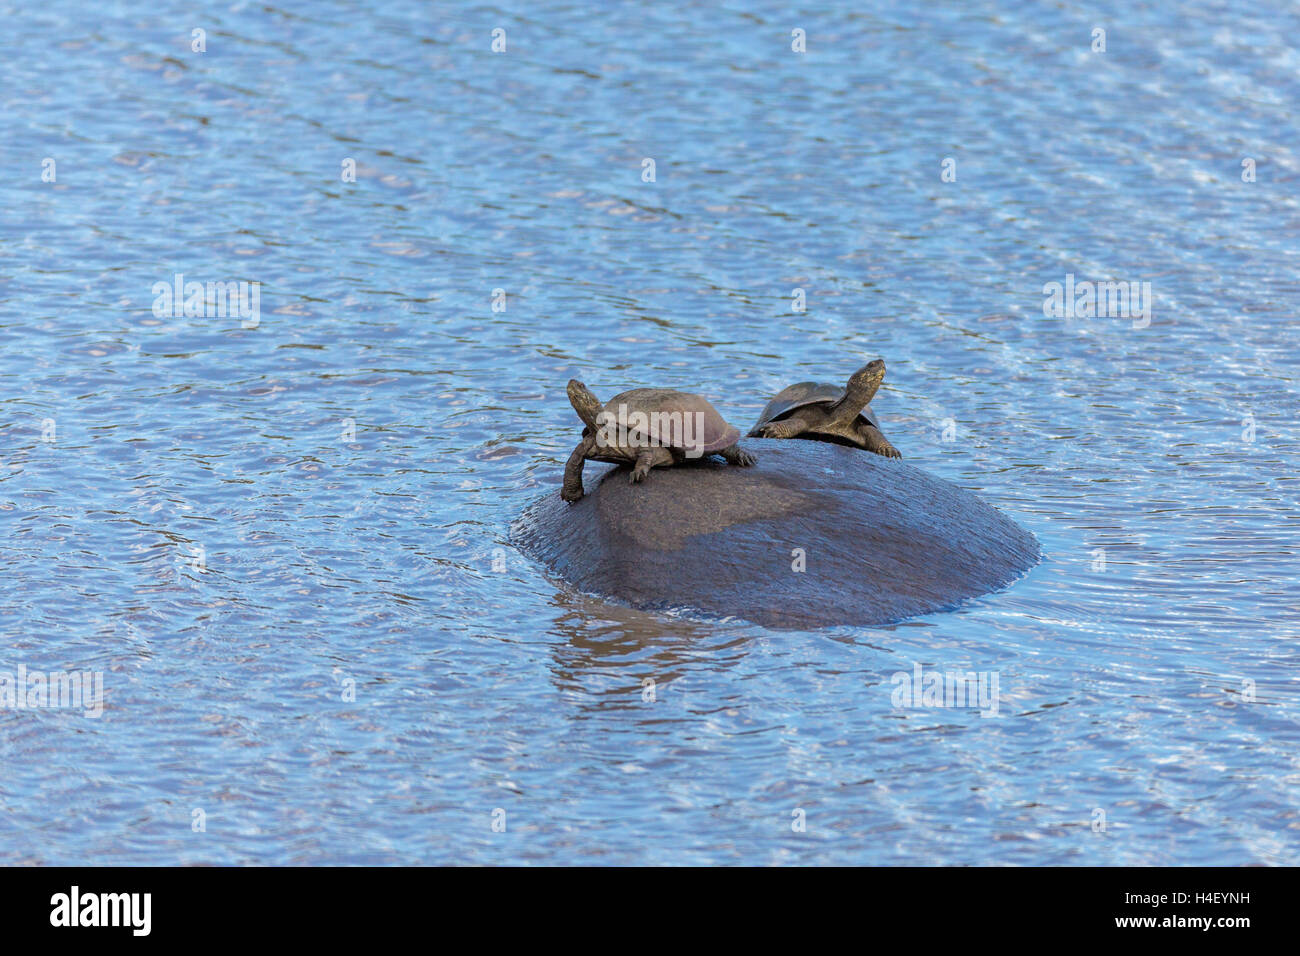 Two turtles sitting with outstretched necks on hippopotamus, serrated hinged terrapin (Pelusios sinuatus) - Stock Image